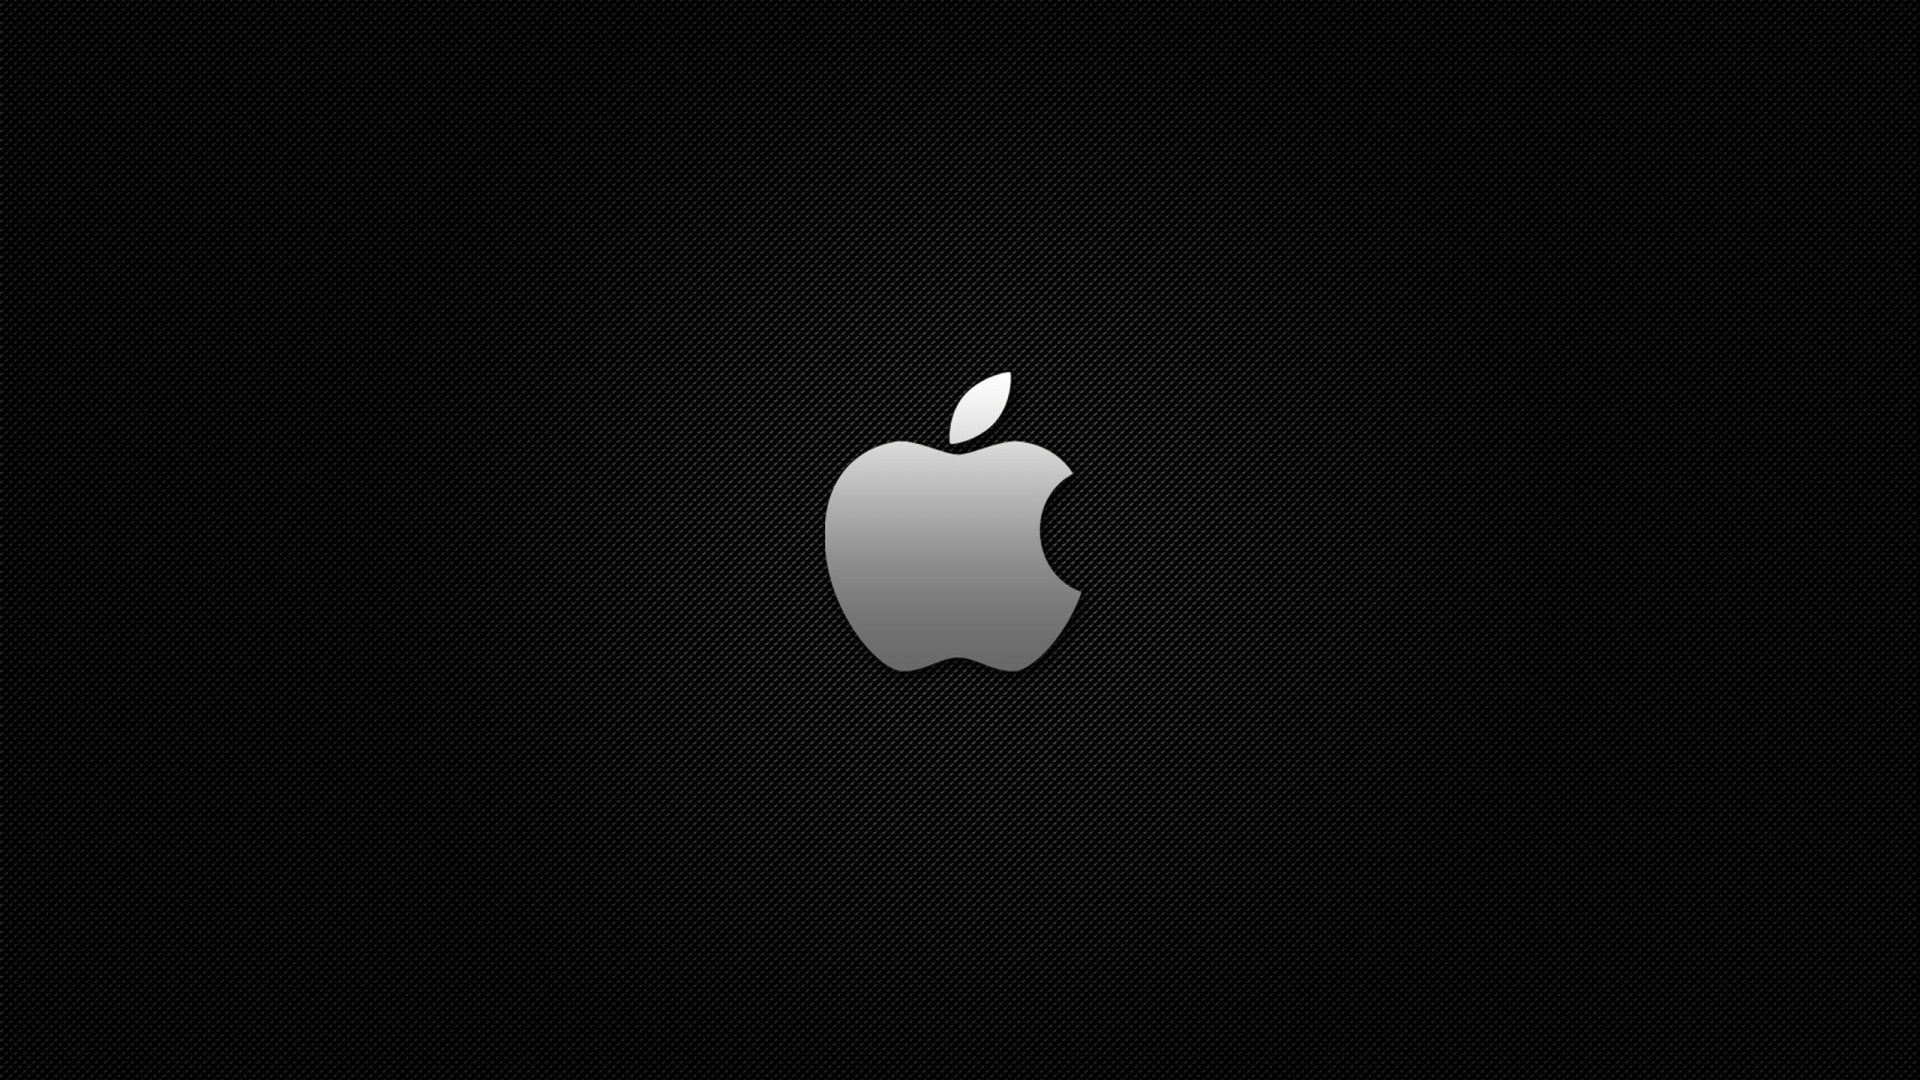 Black Apple Logo Wallpapers HD Wallpaper Black apple